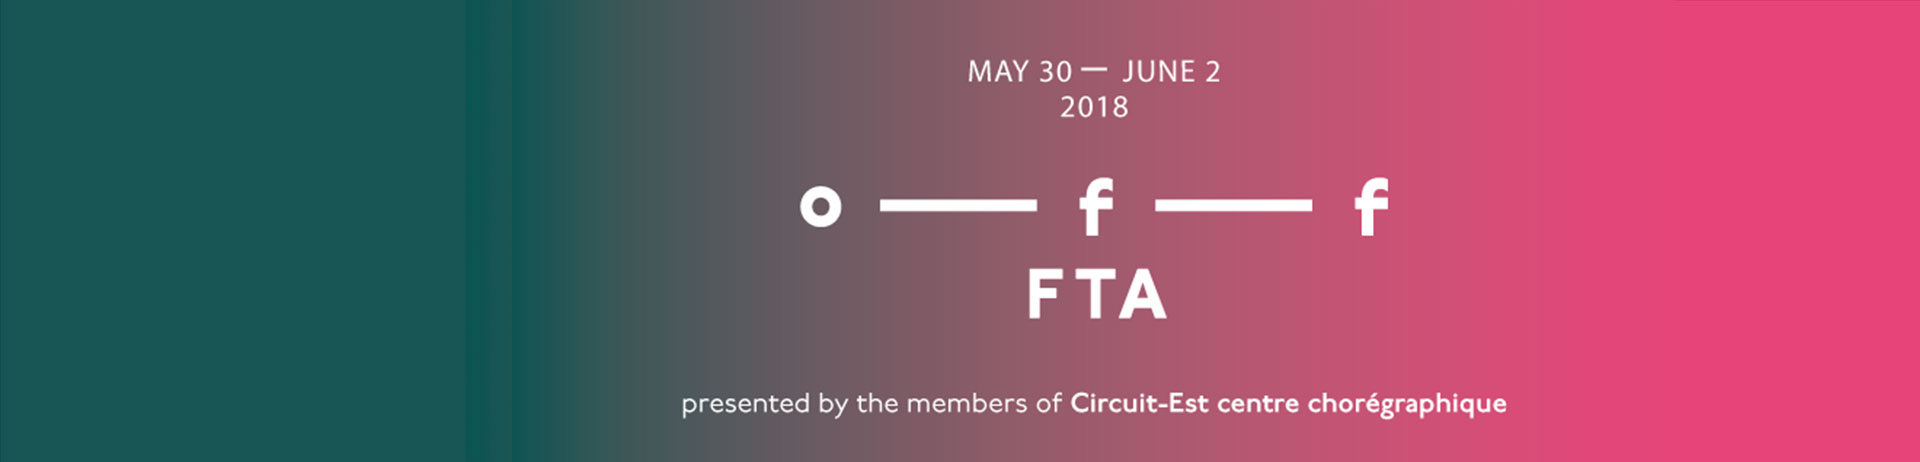 Off Fta By The Members Of Circuit Est Pictures